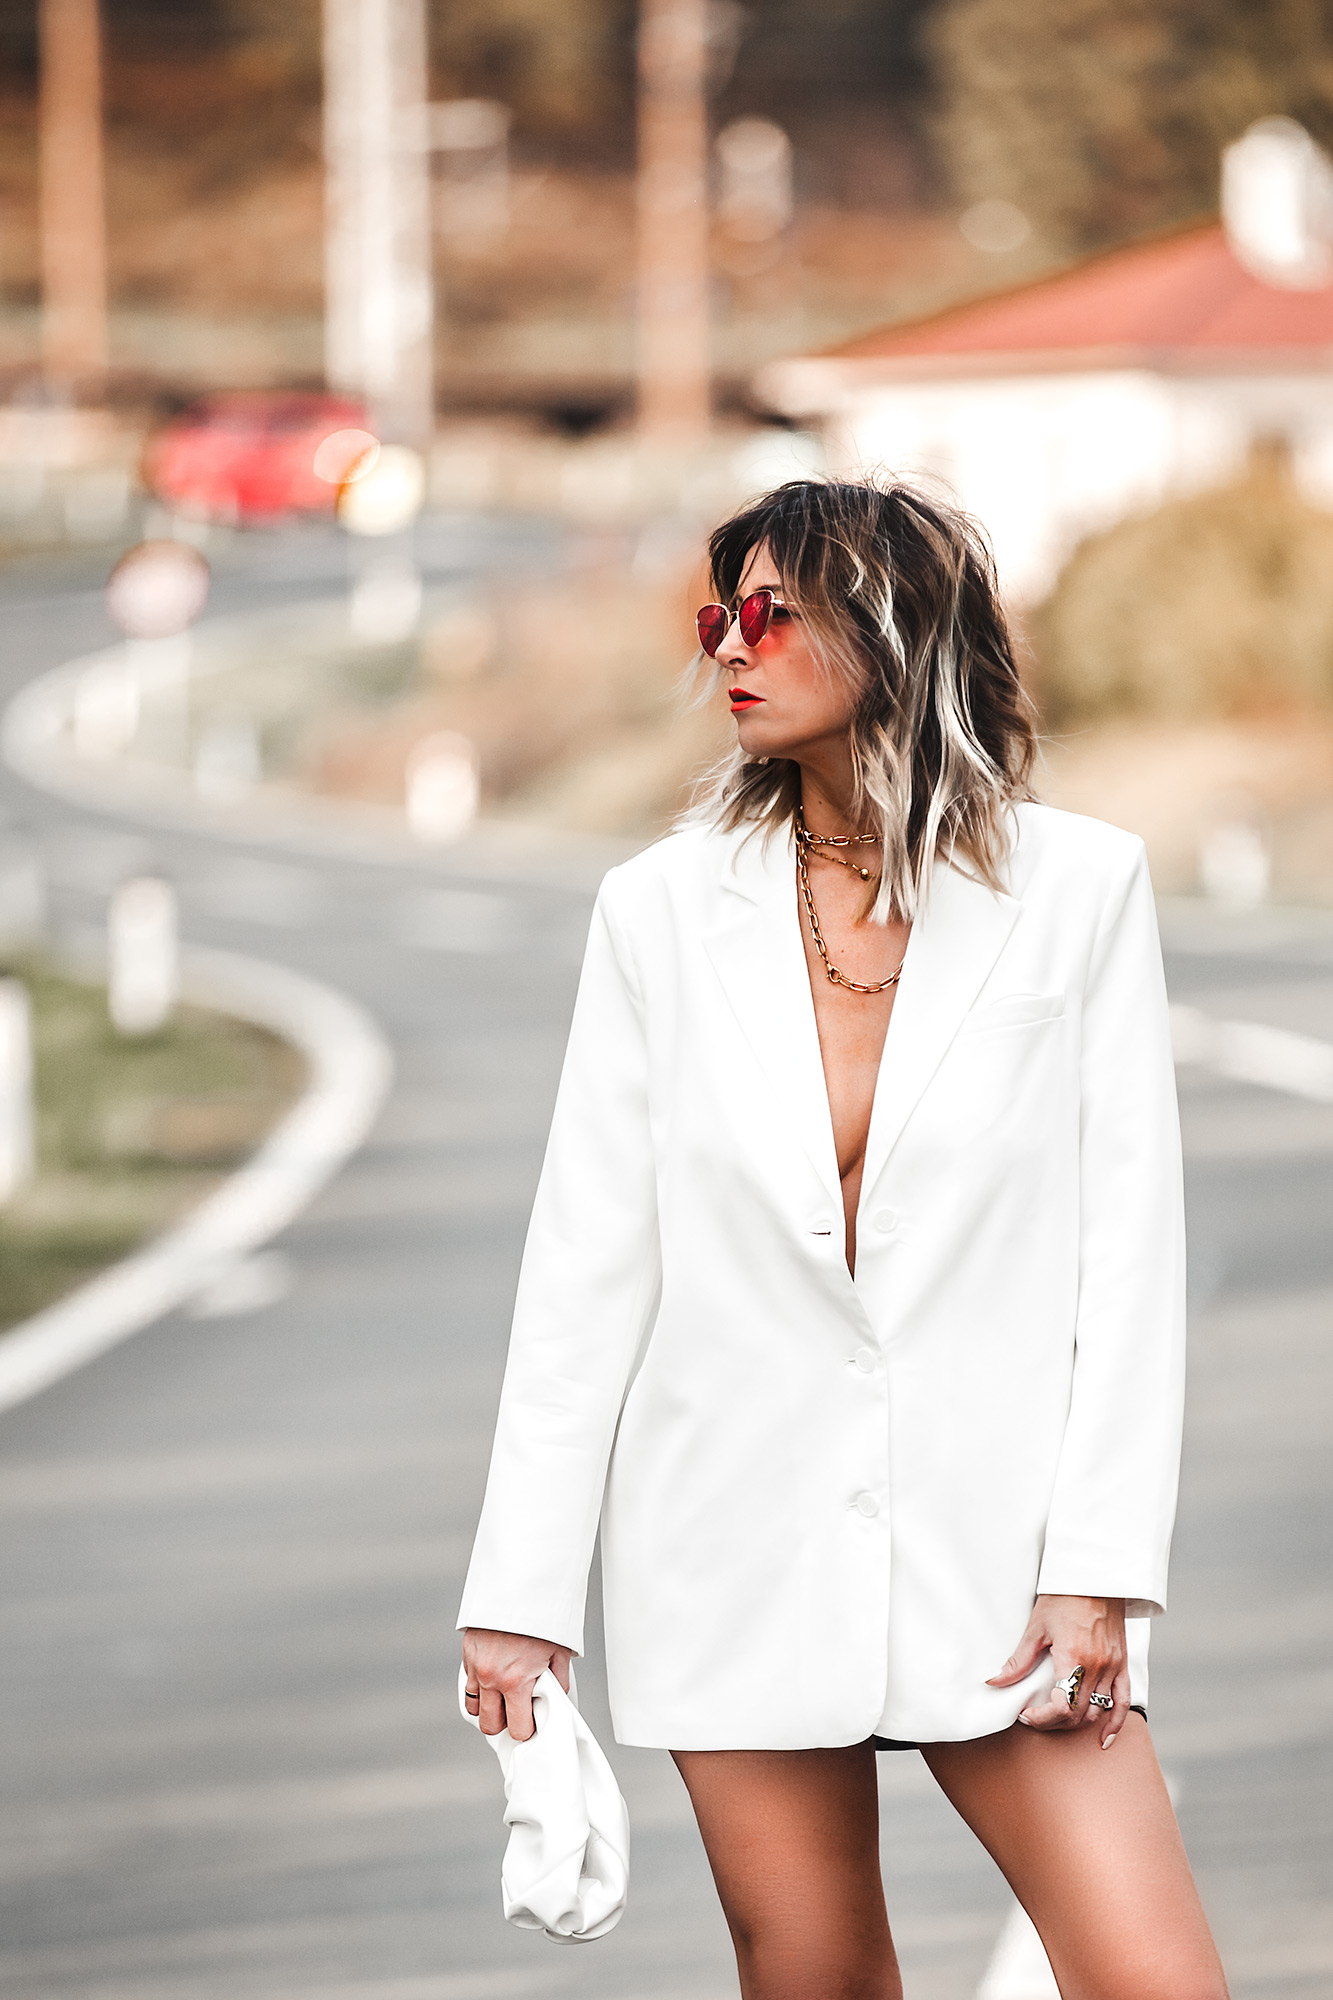 SHOULD I BUY A WHITE OR A BLACK SUIT? Both are necessary and great staples. But if you already have at least one perfect-fitting black suit then you can stop buying black and try white. Why? Because a white suit gives more room colorwise for mix-n-match combinations. Read more... White blazer, white clutch.